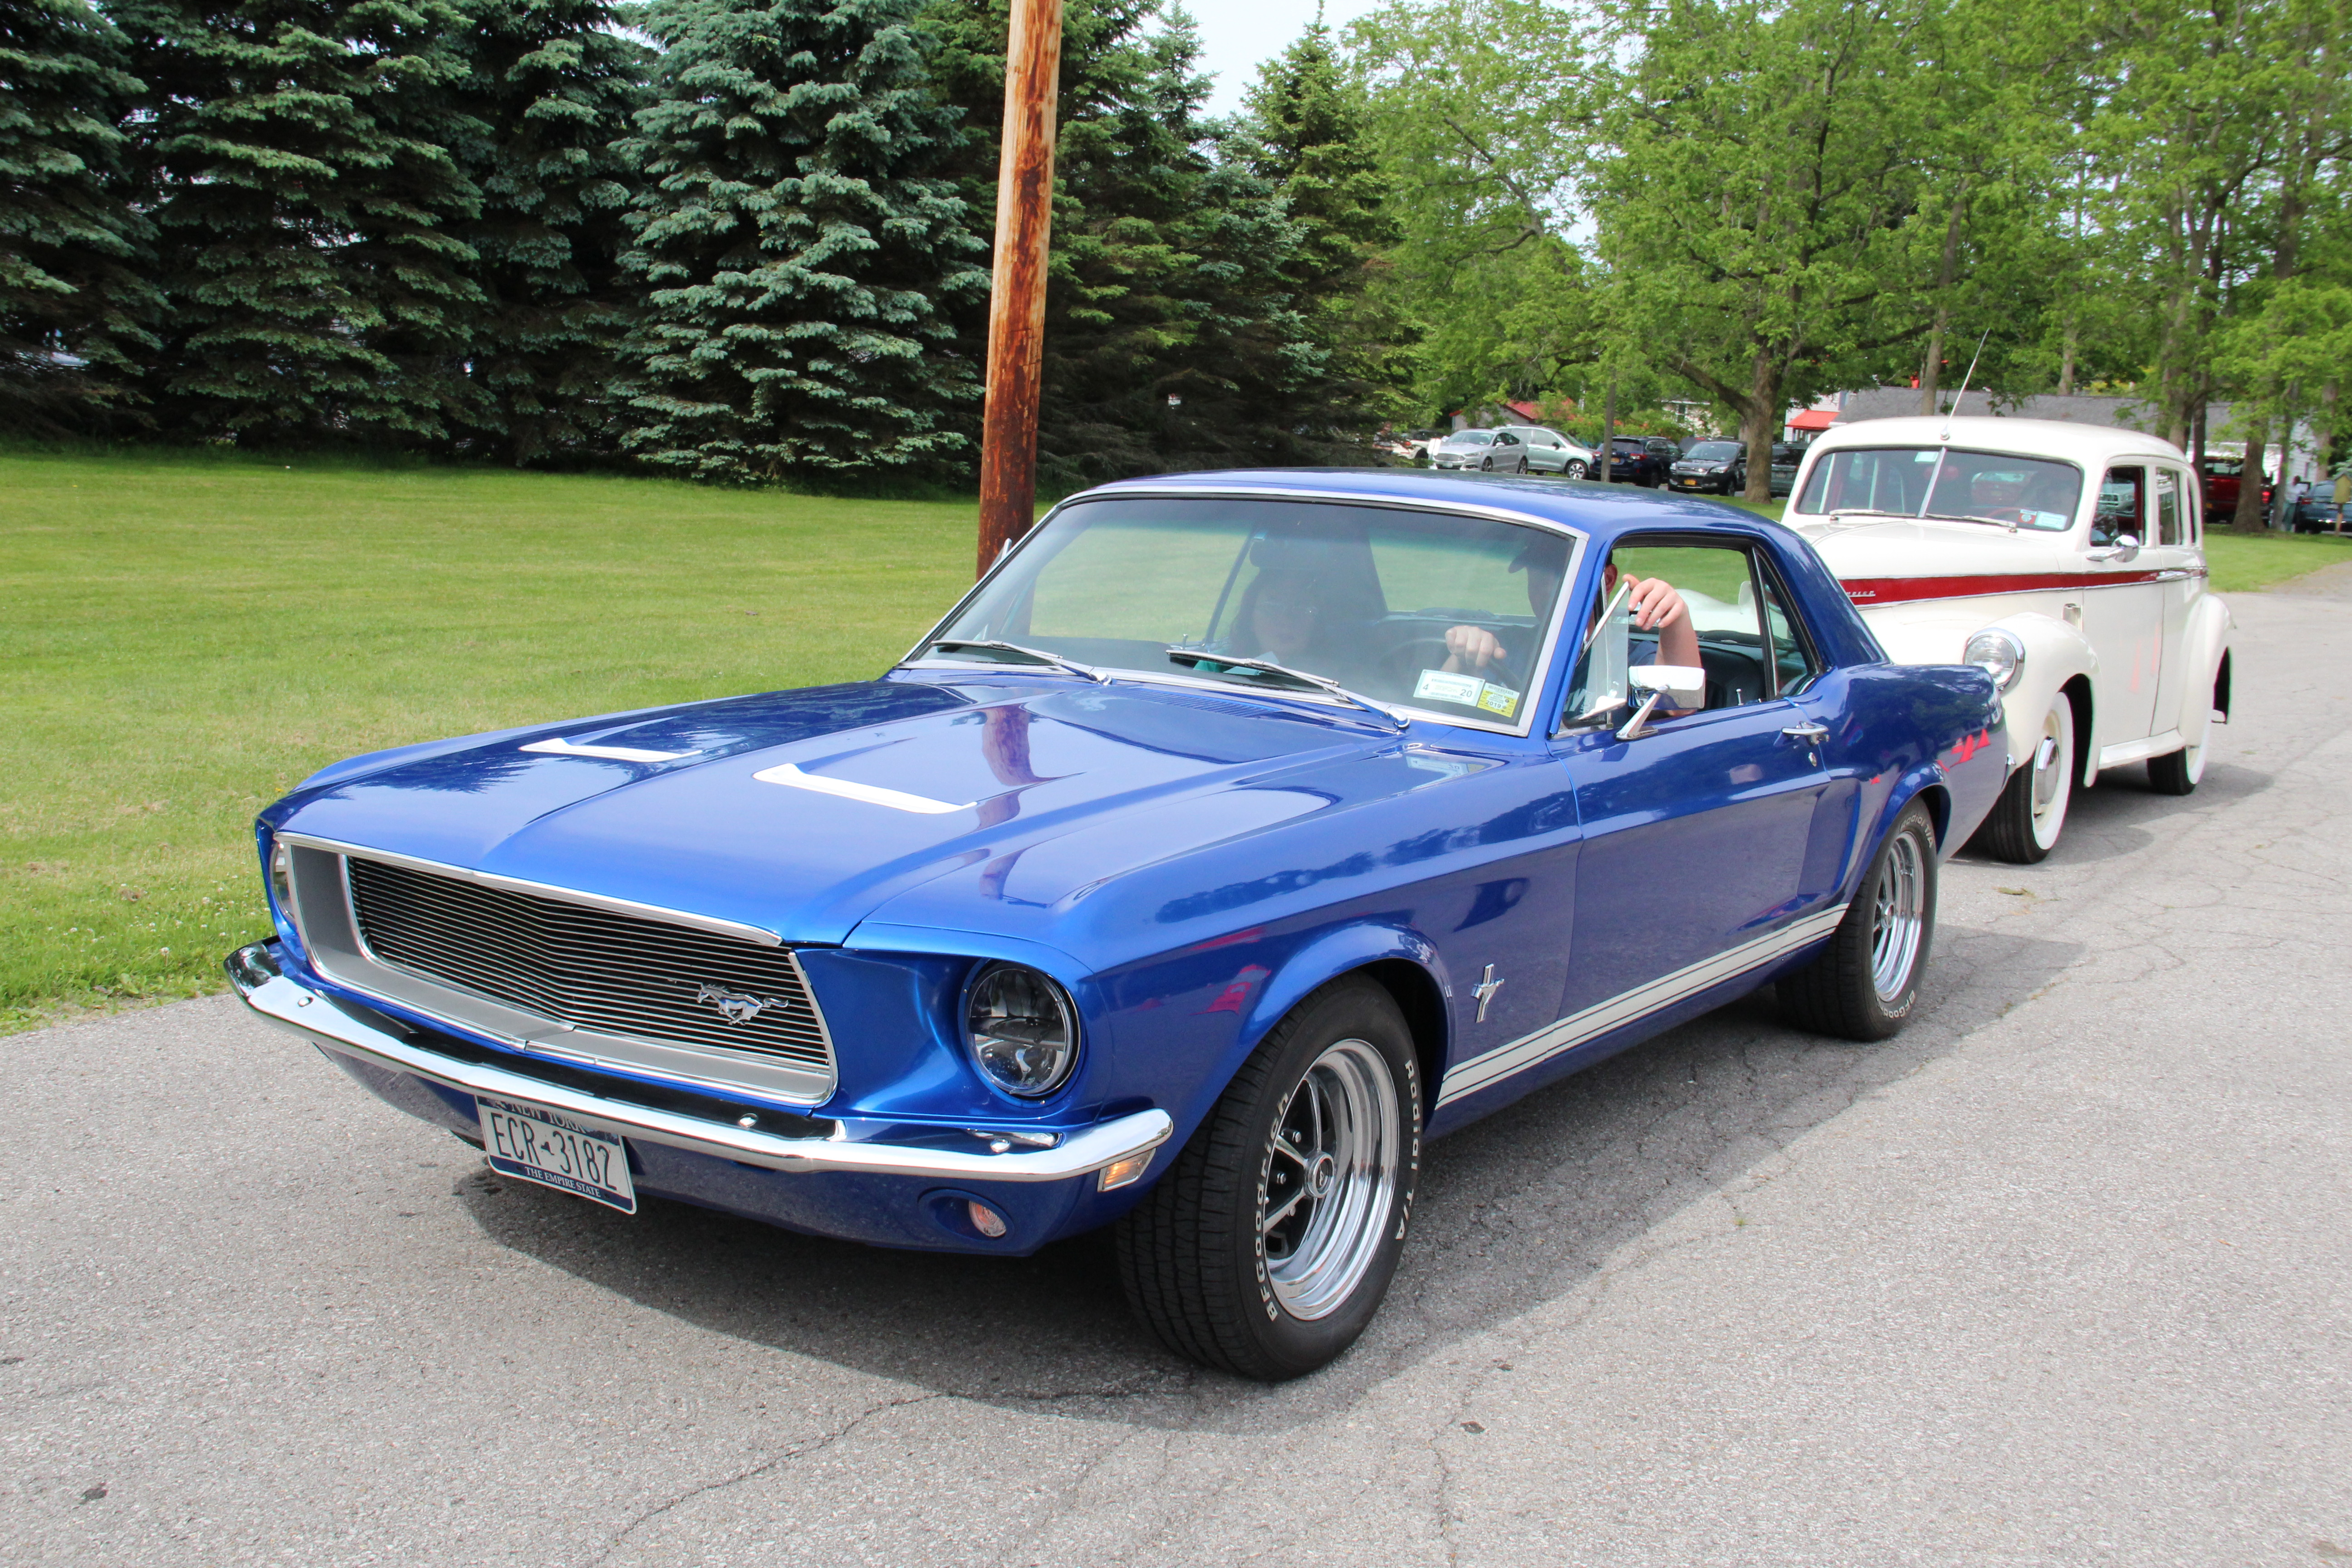 IMG_0471-Class-18-Allen-Wagner-1968-Mustang-Modified